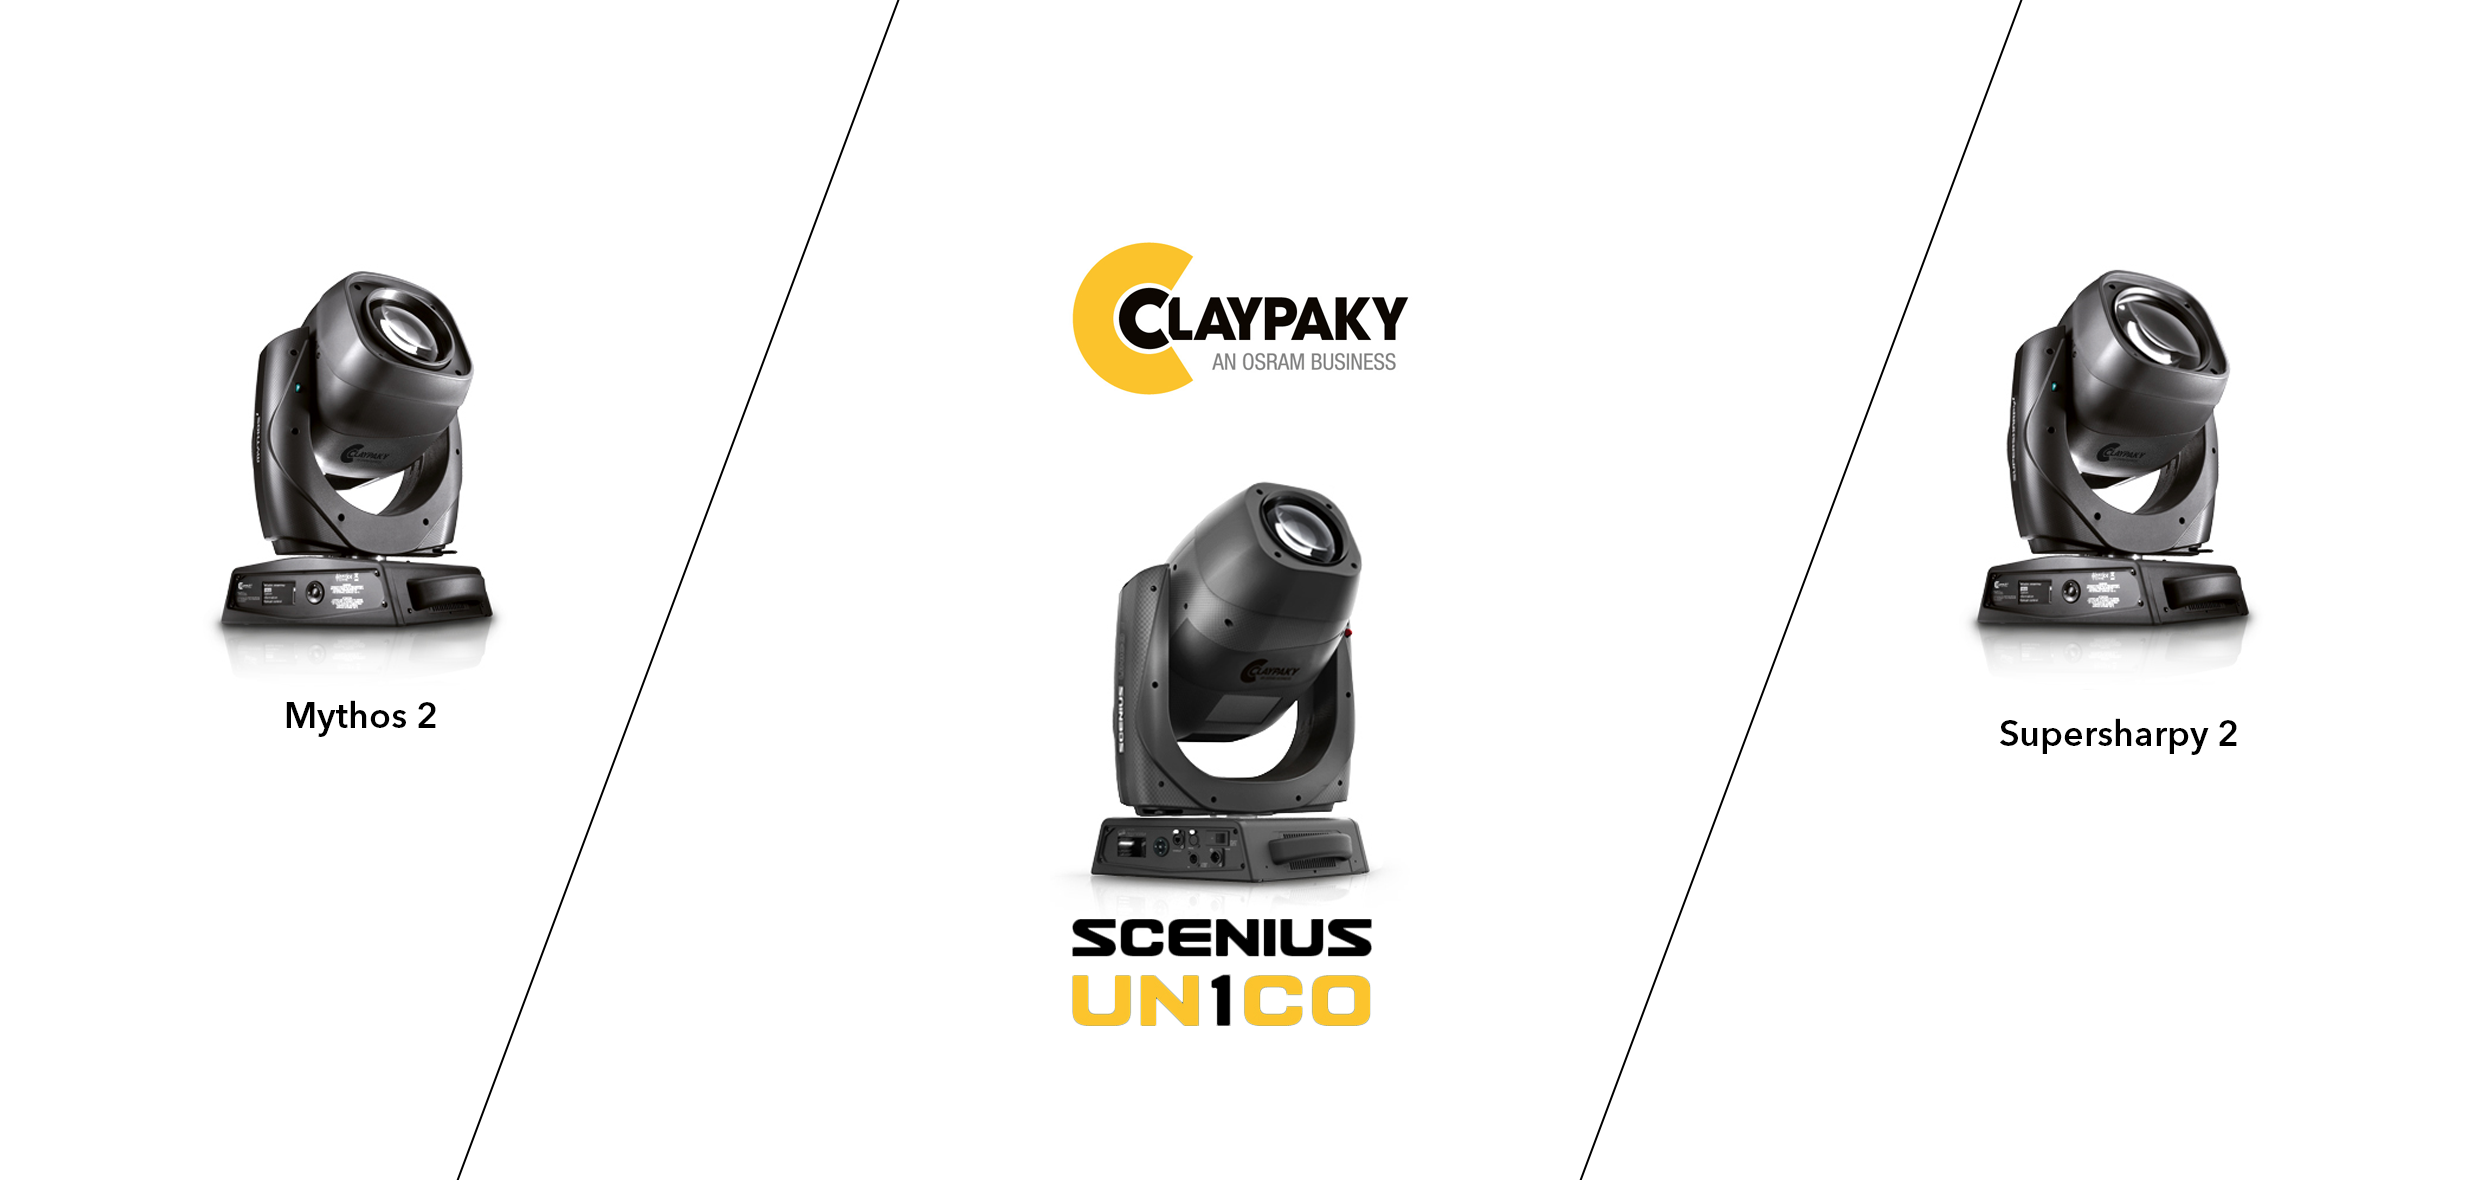 Nowi w Prolight